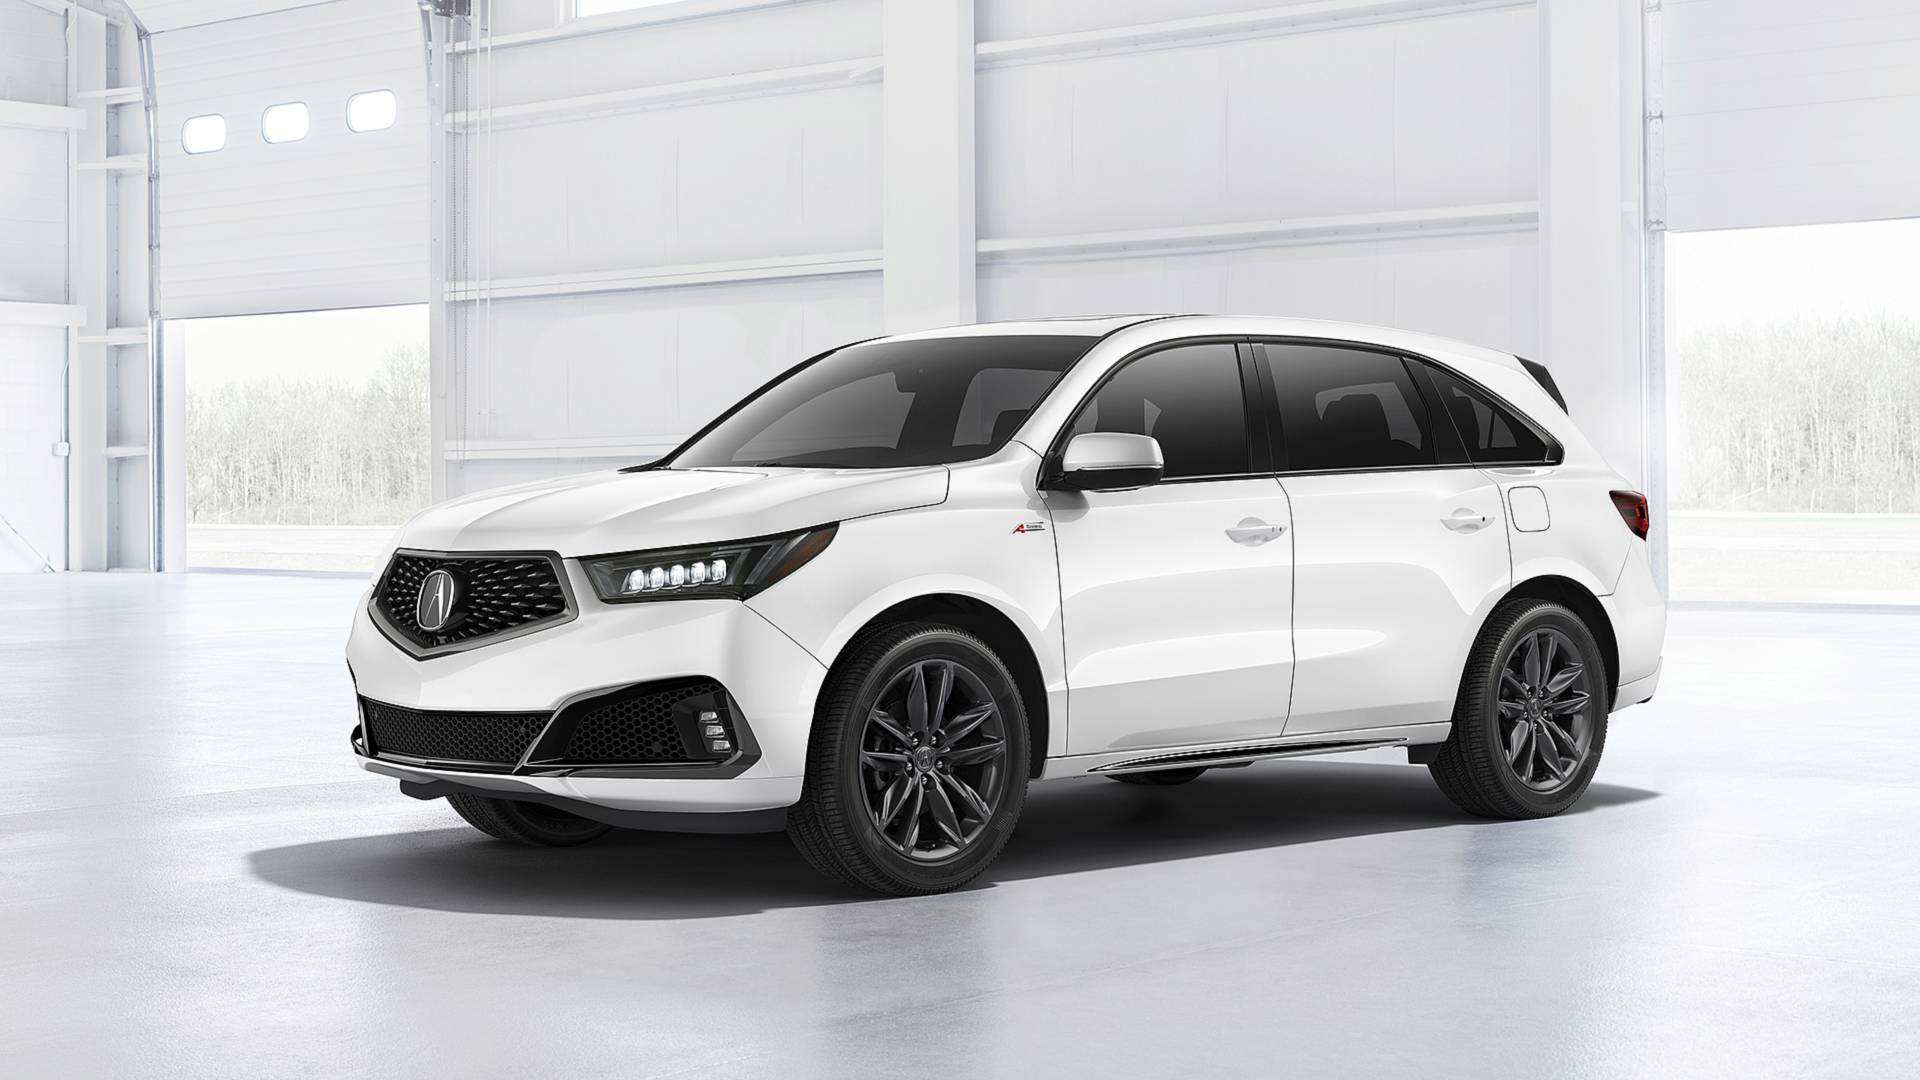 12 A 2020 Acura Mdx Spy Photos Images